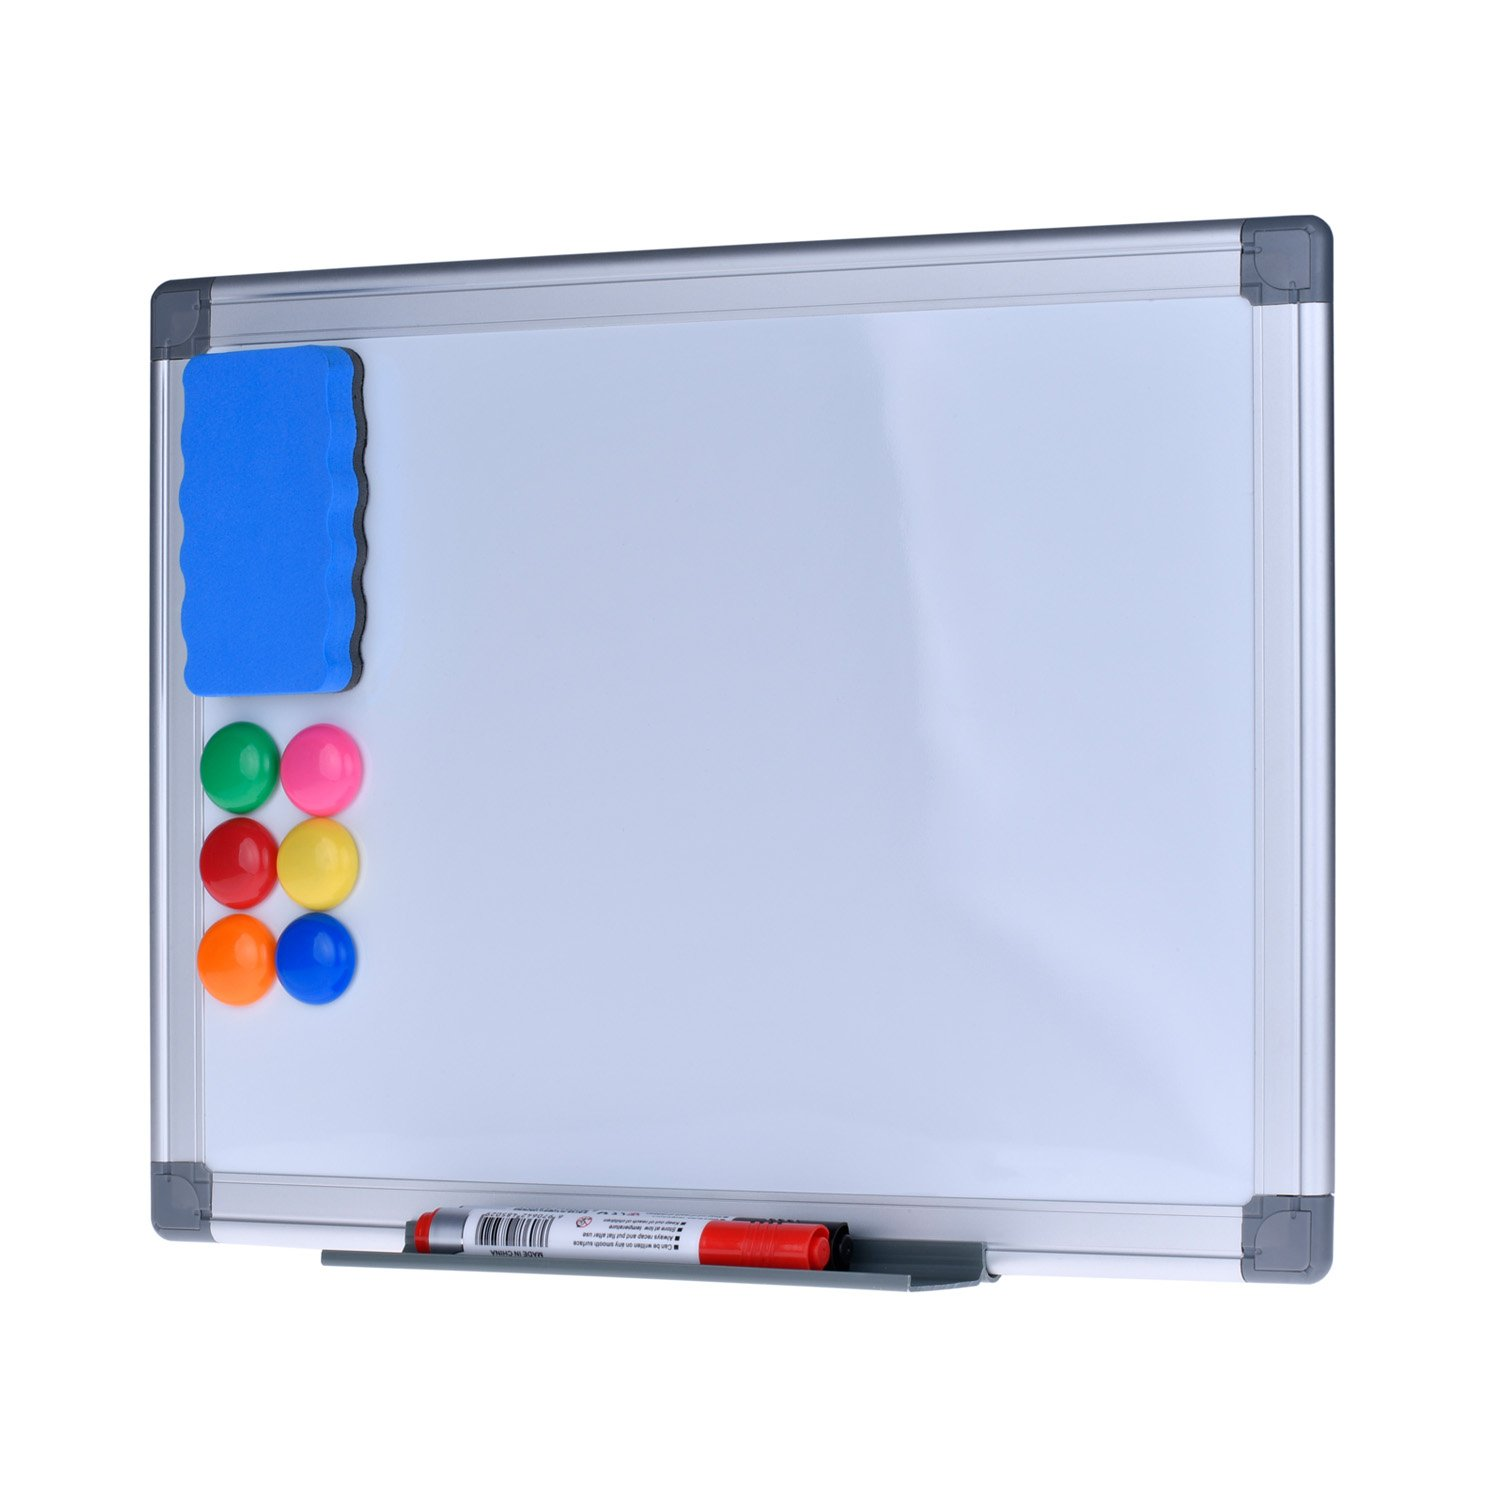 Magnetic Dry Erase Board - EFIRNITURE 12x15 inch Aluminum Frame Wall Mounted Whiteboard, 6 Magnets, 2 Marker Pens, 1 Eraser, and Removable Marker Tray Included by EFIRNITURE (Image #5)